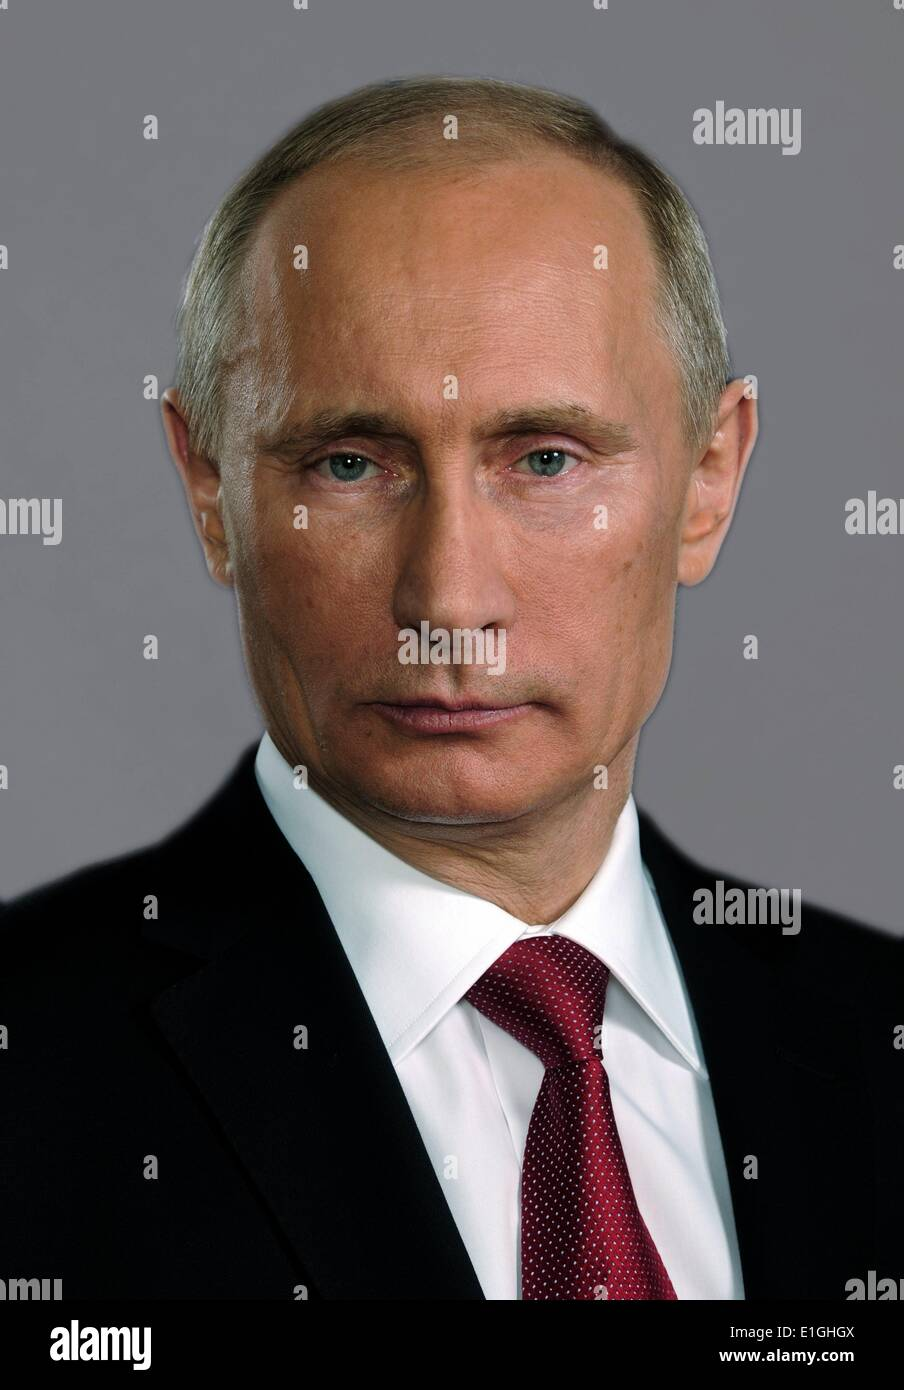 Vladimir Putin (born 1951). President of Russia since 7 May 2012. He previously served as President from 2000 to 2008, and as - Stock Image